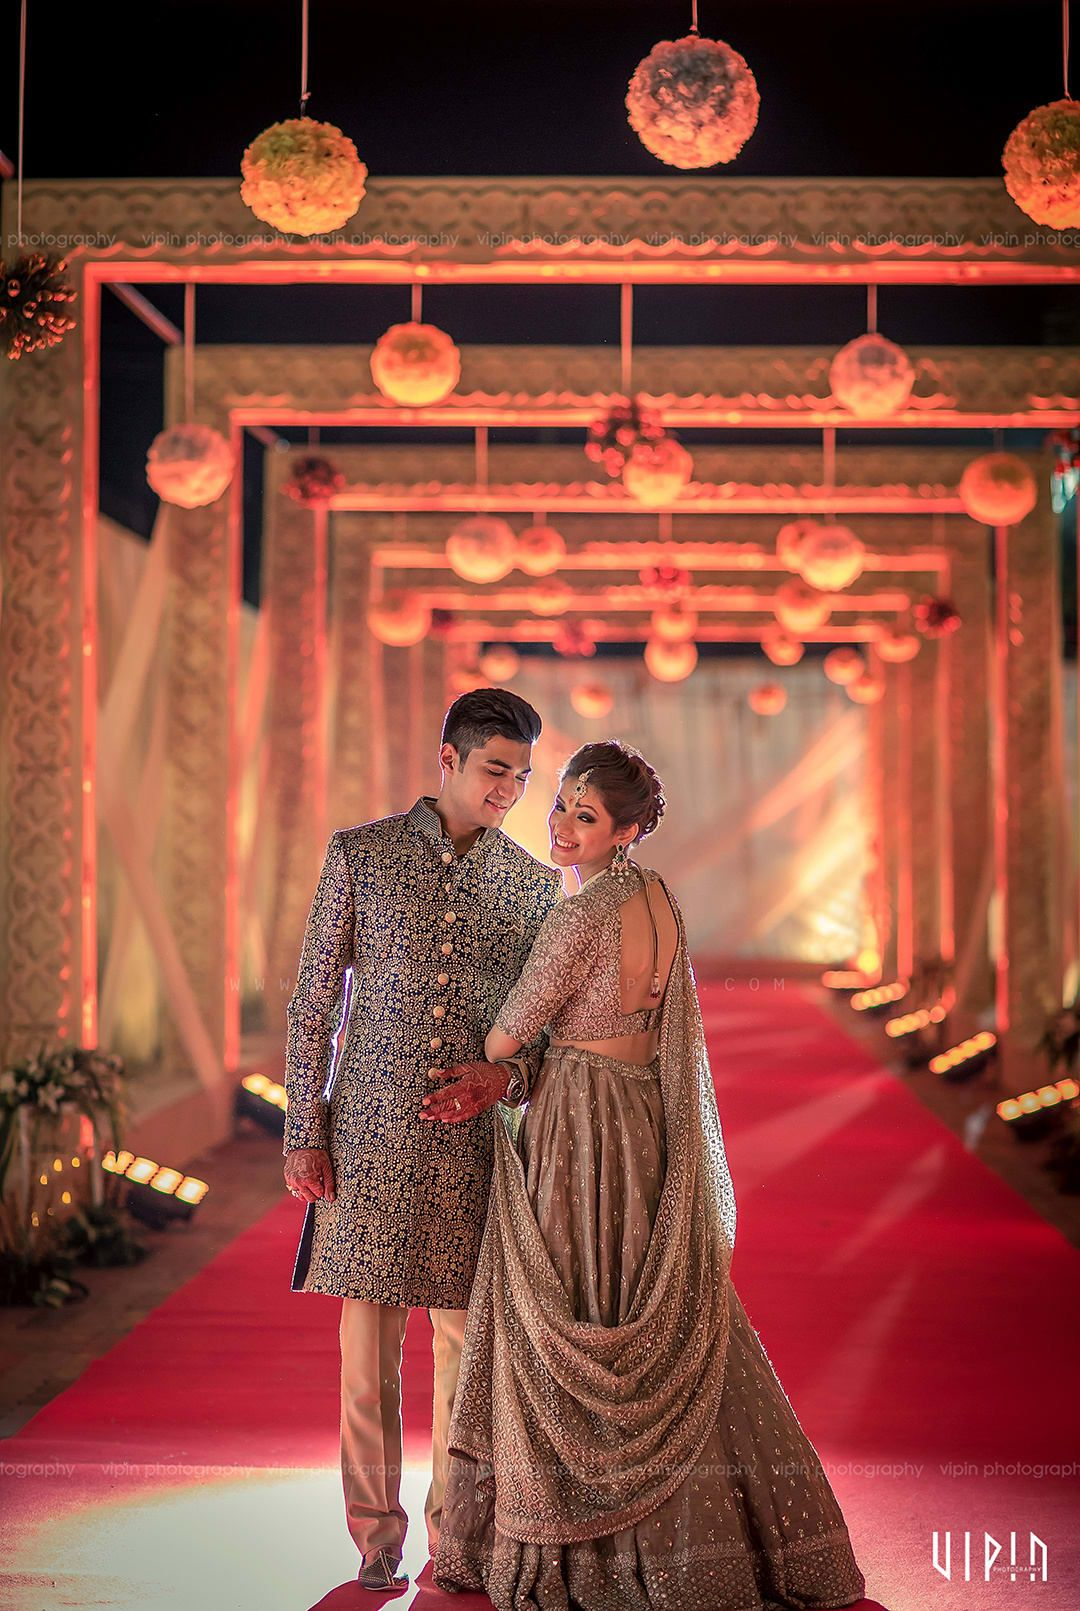 The perfect soulmates jayesh pinterest wedding couples and